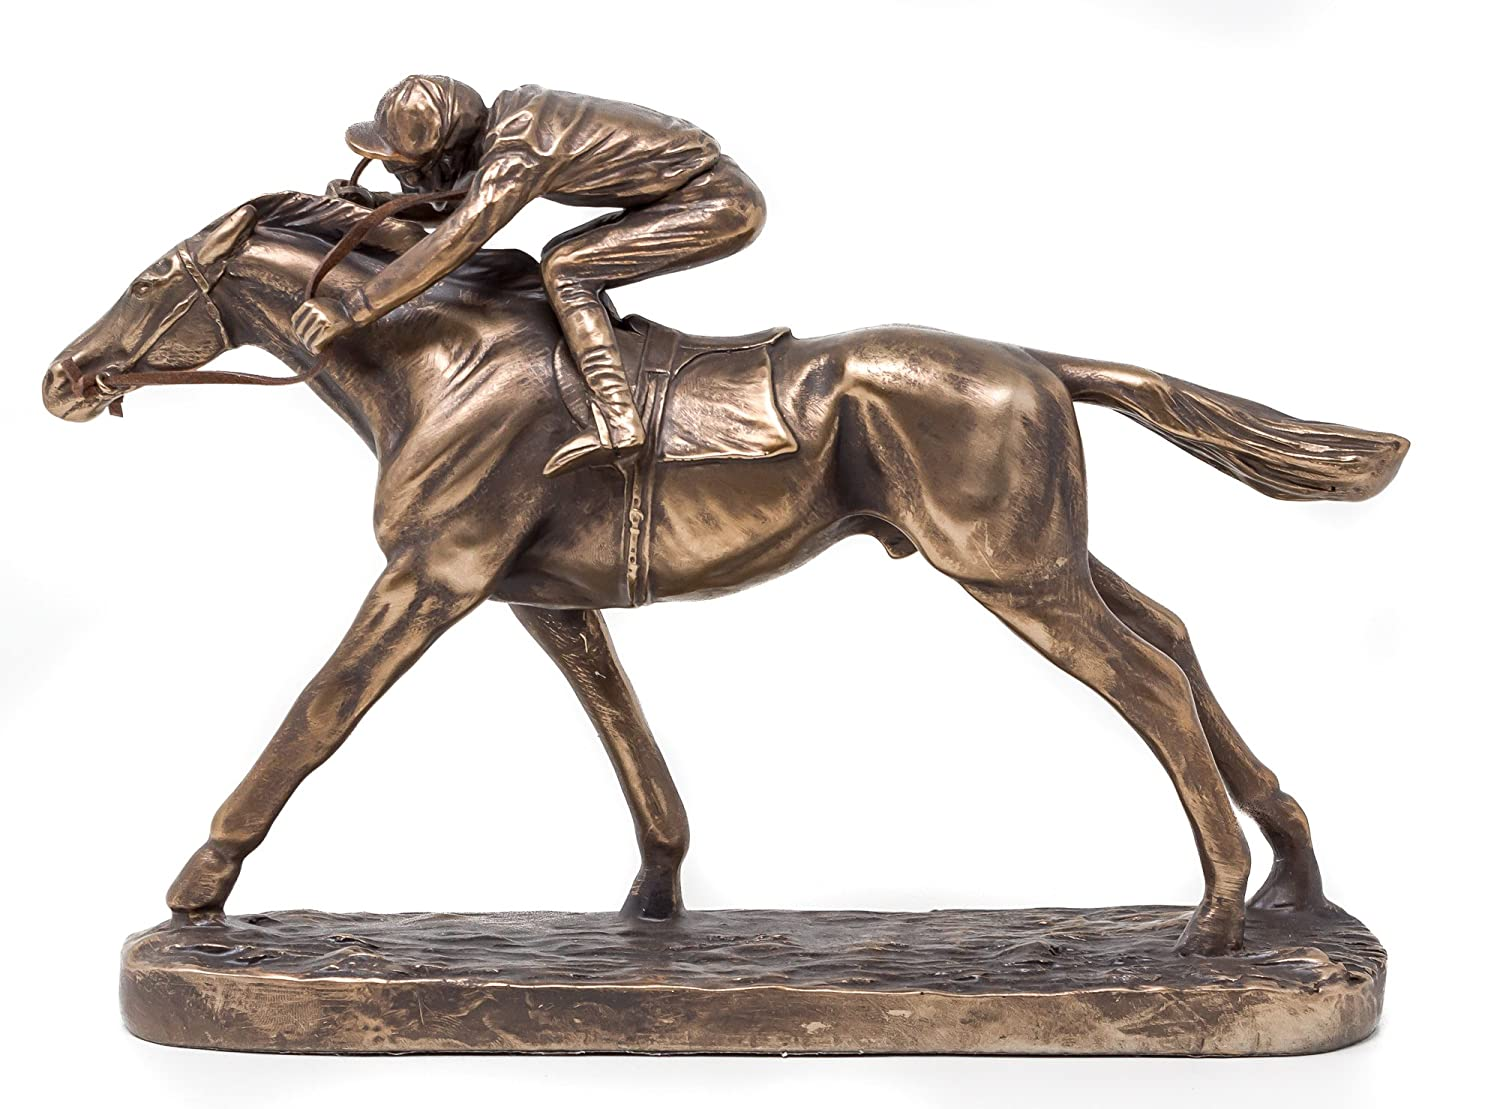 Galloping Racehorse & Jockey Sculpture - Cold Cast Bronze Horse Racing Figurine Artistic Bronze